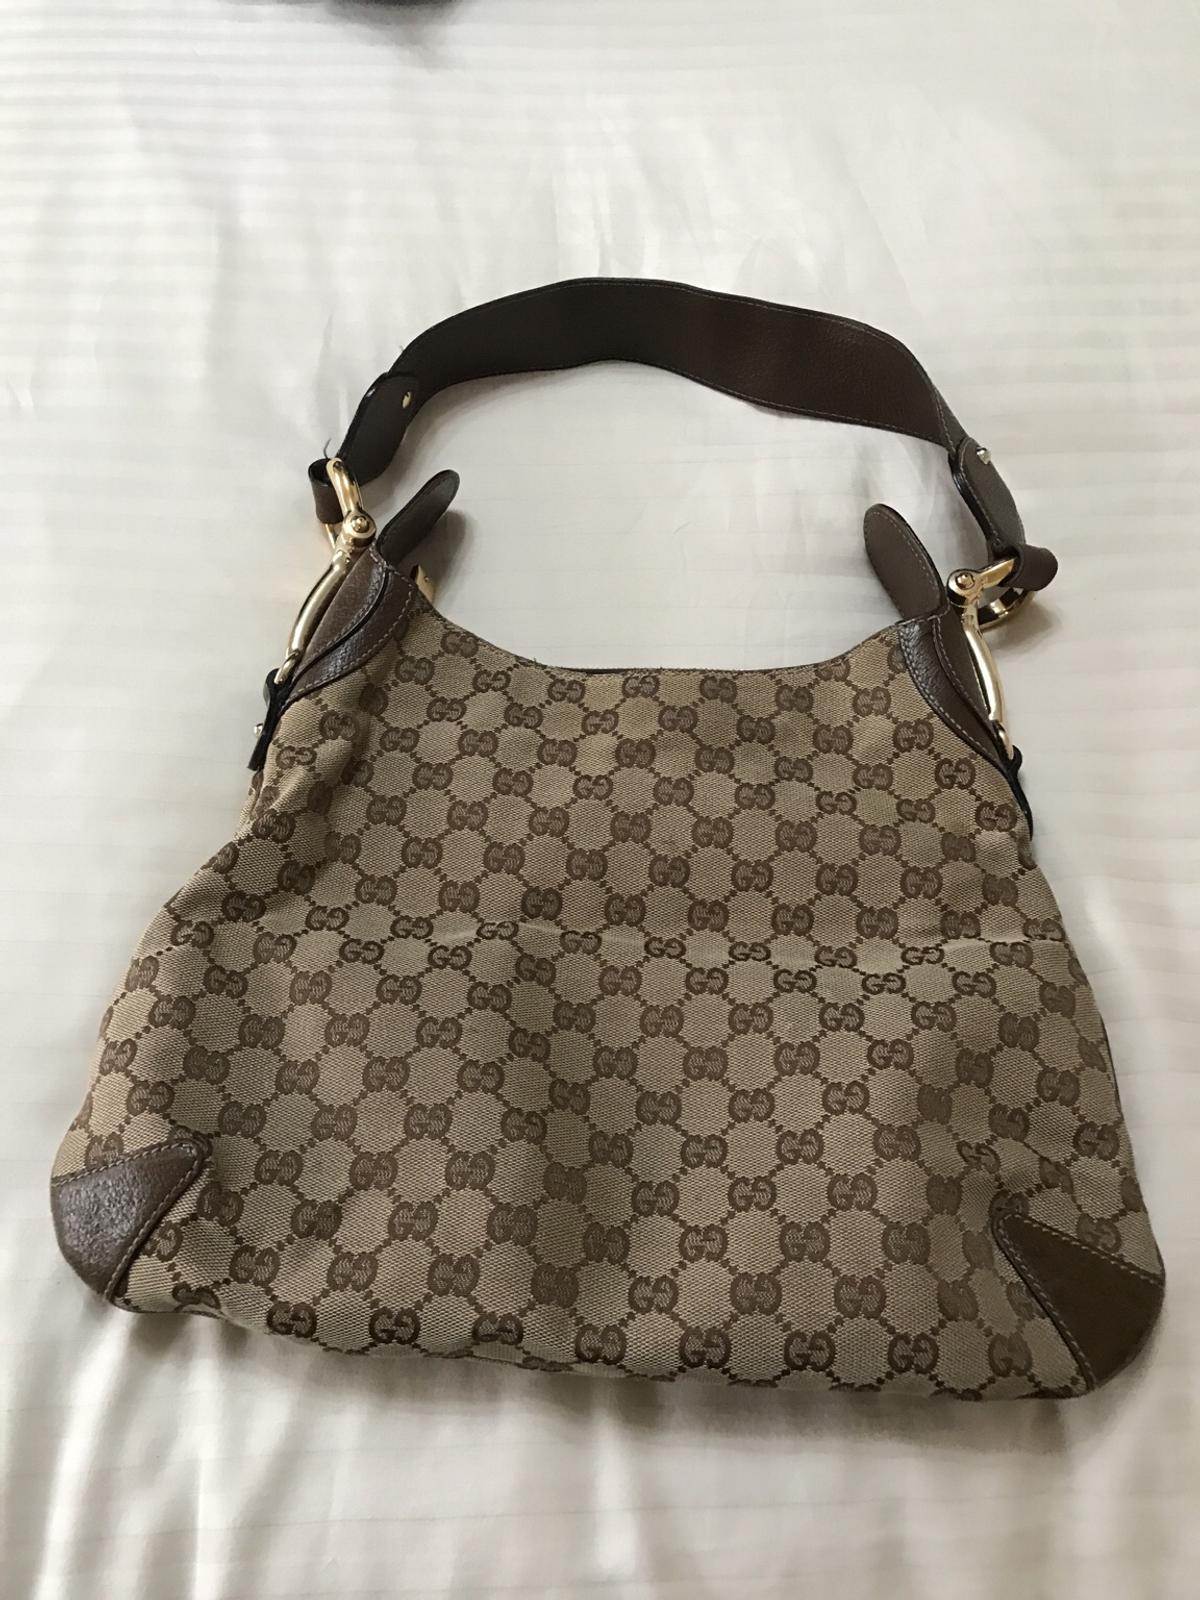 ce558807e4 Authentic Gucci bag in Epping Forest for £85.00 for sale - Shpock